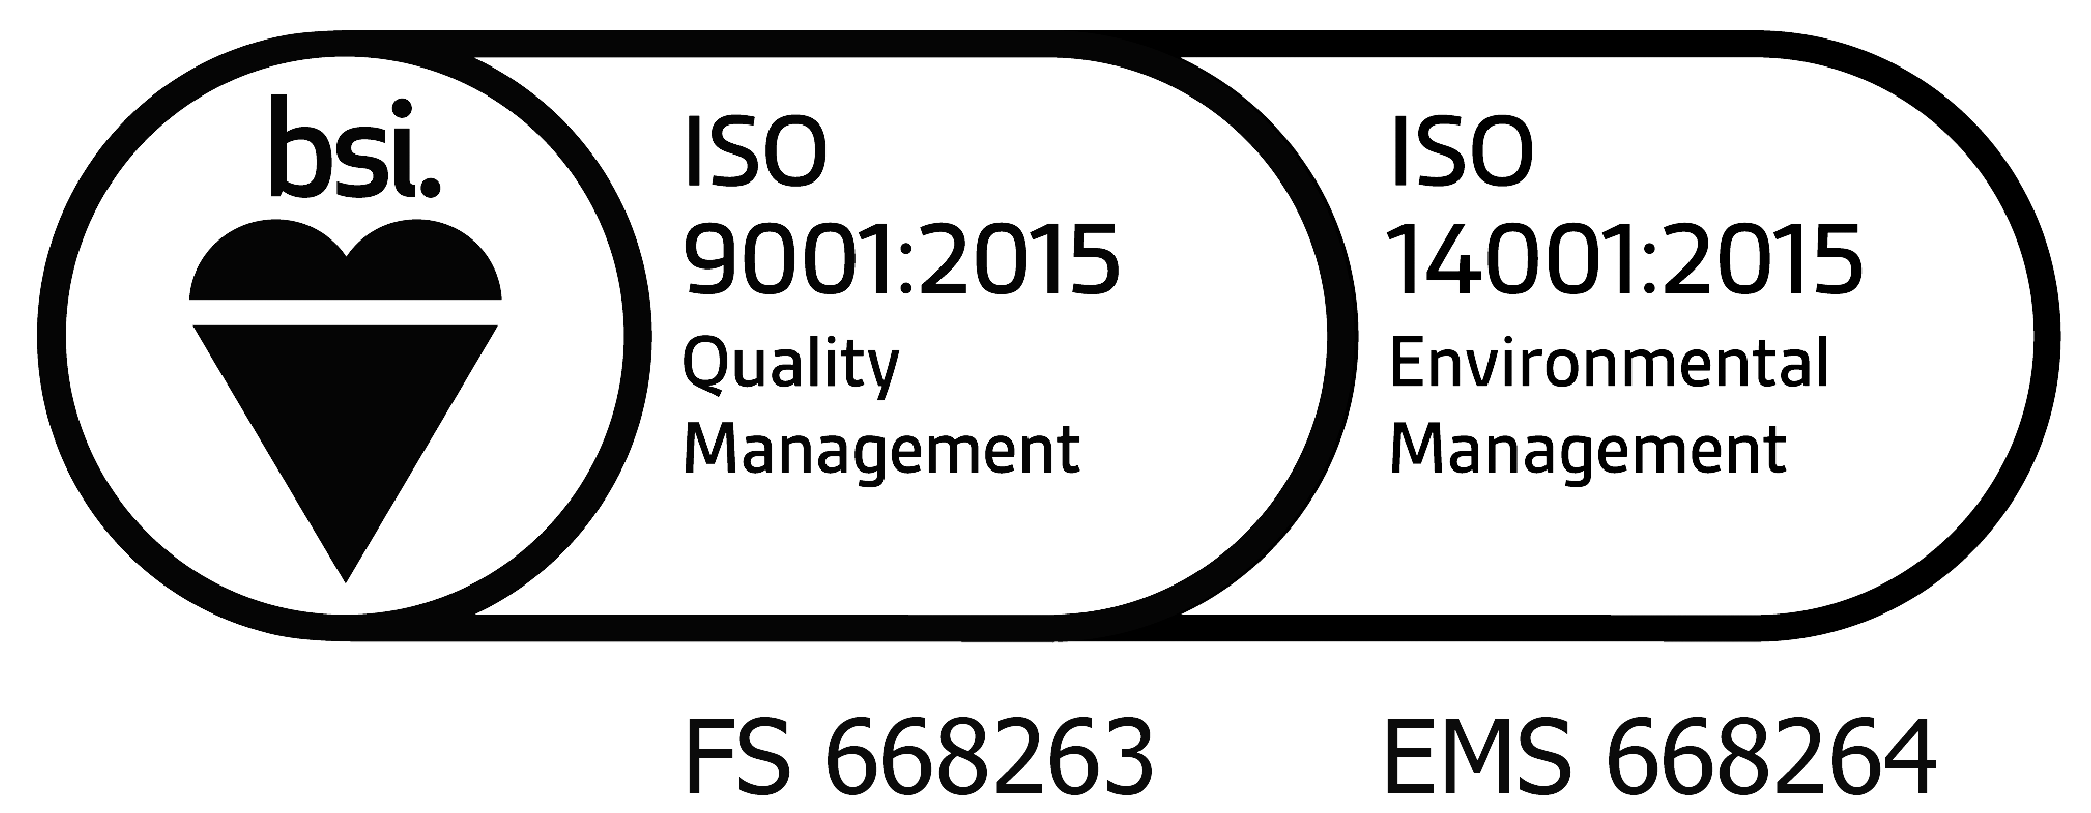 Profab Access is a BSI ISO9001 Quality Management and BSI140001 Environmental Management Assured UK manufacturing company